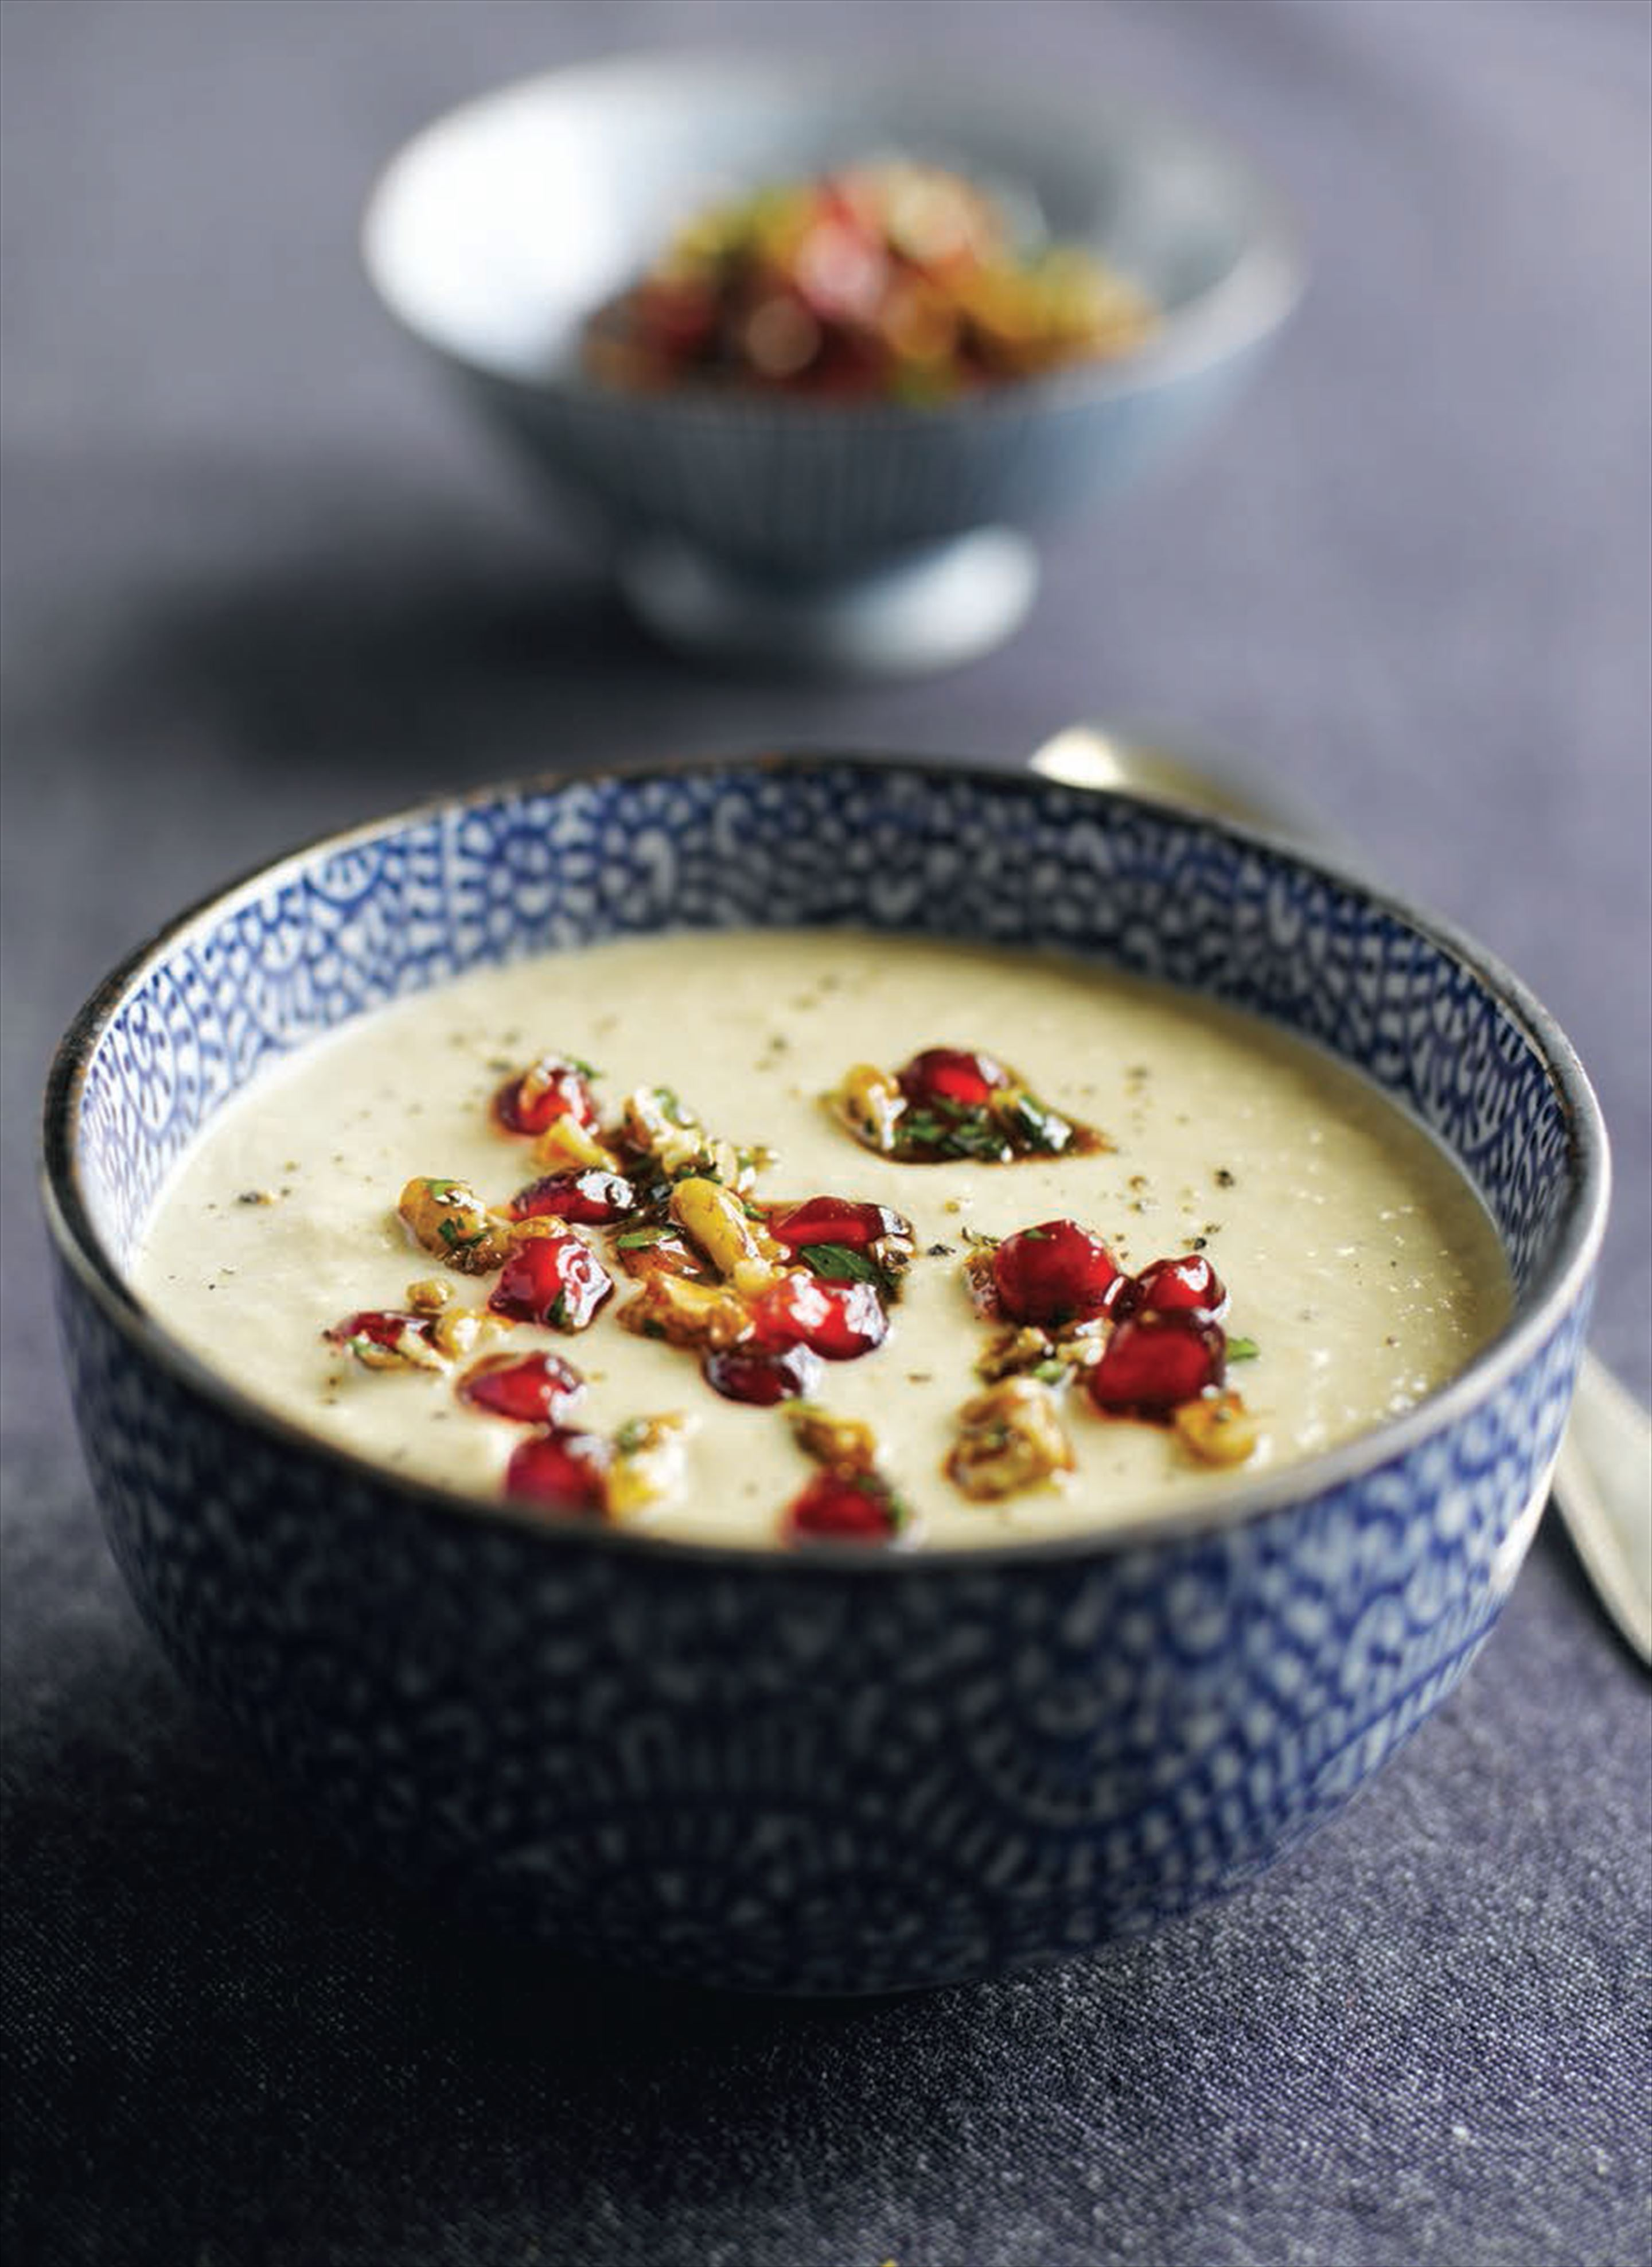 Creamy aubergine soup with walnut, parsley and pomegranate salsa